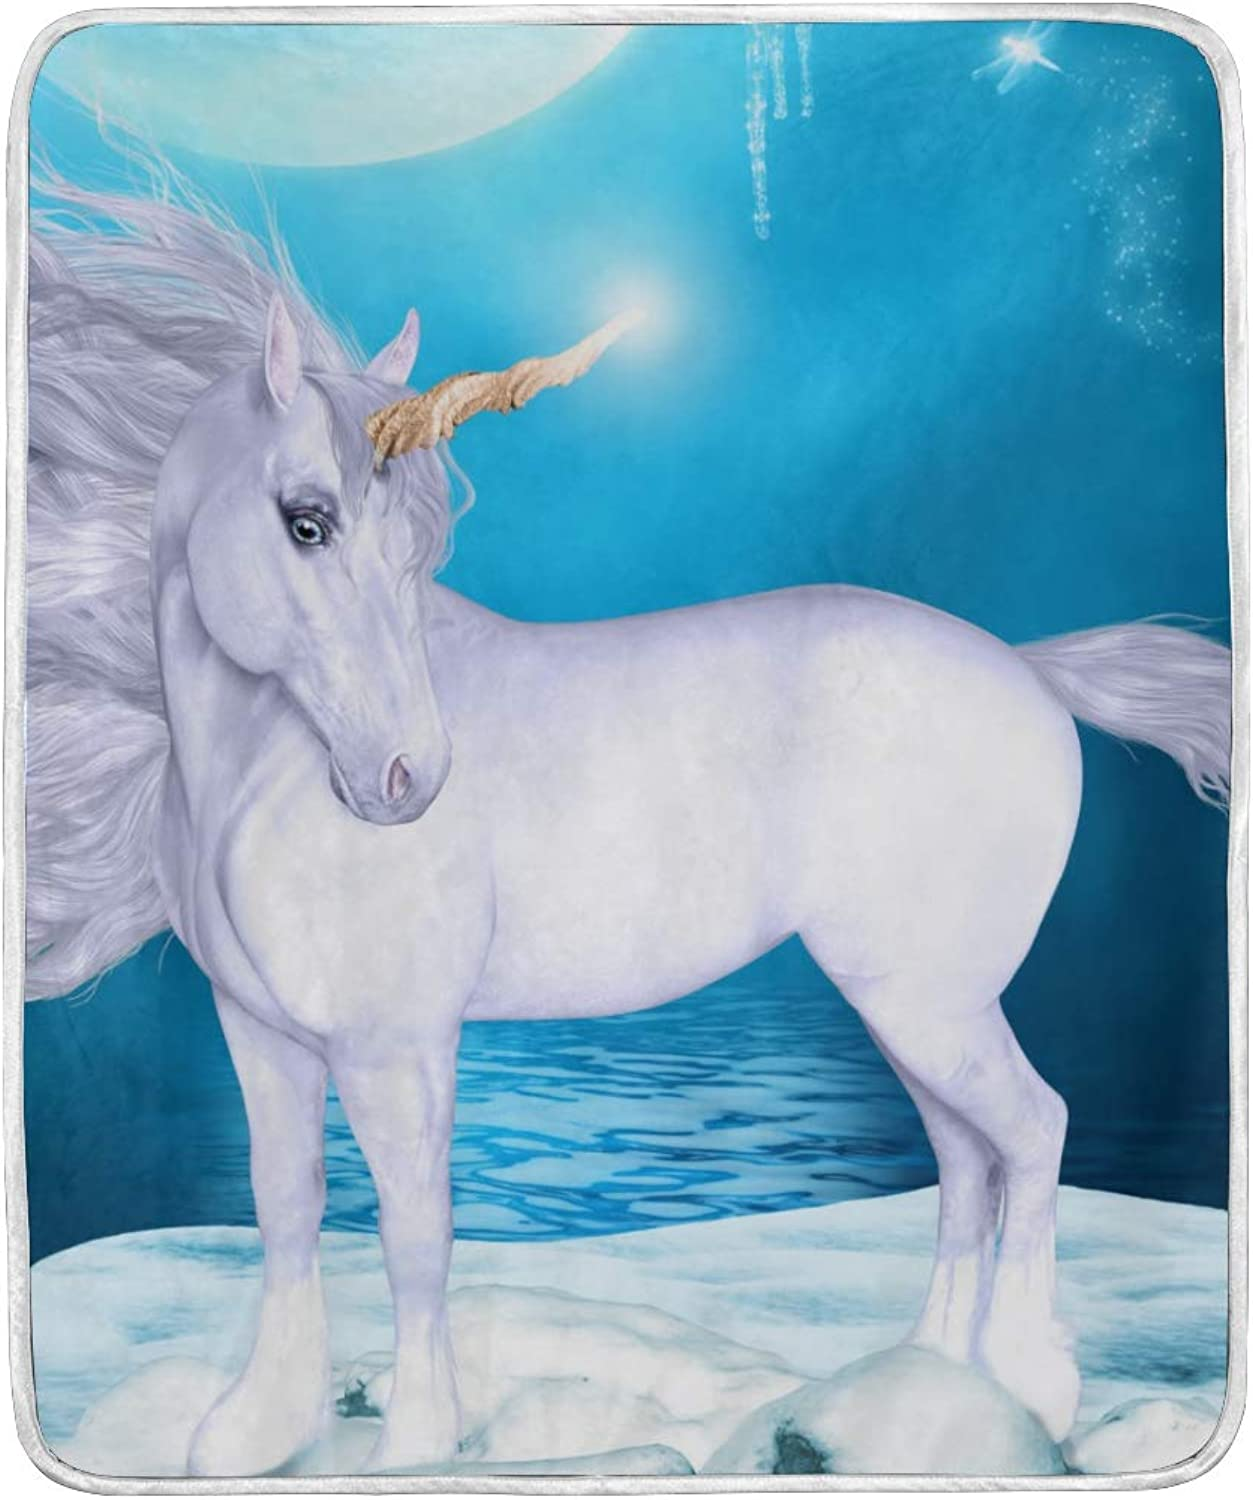 CIXUAN Horse Print Throw Blanket Comfort Design Home Decoration Lightweight Blanket for Kids Boys Women Men Perfect for Couch Sofa or Travelling